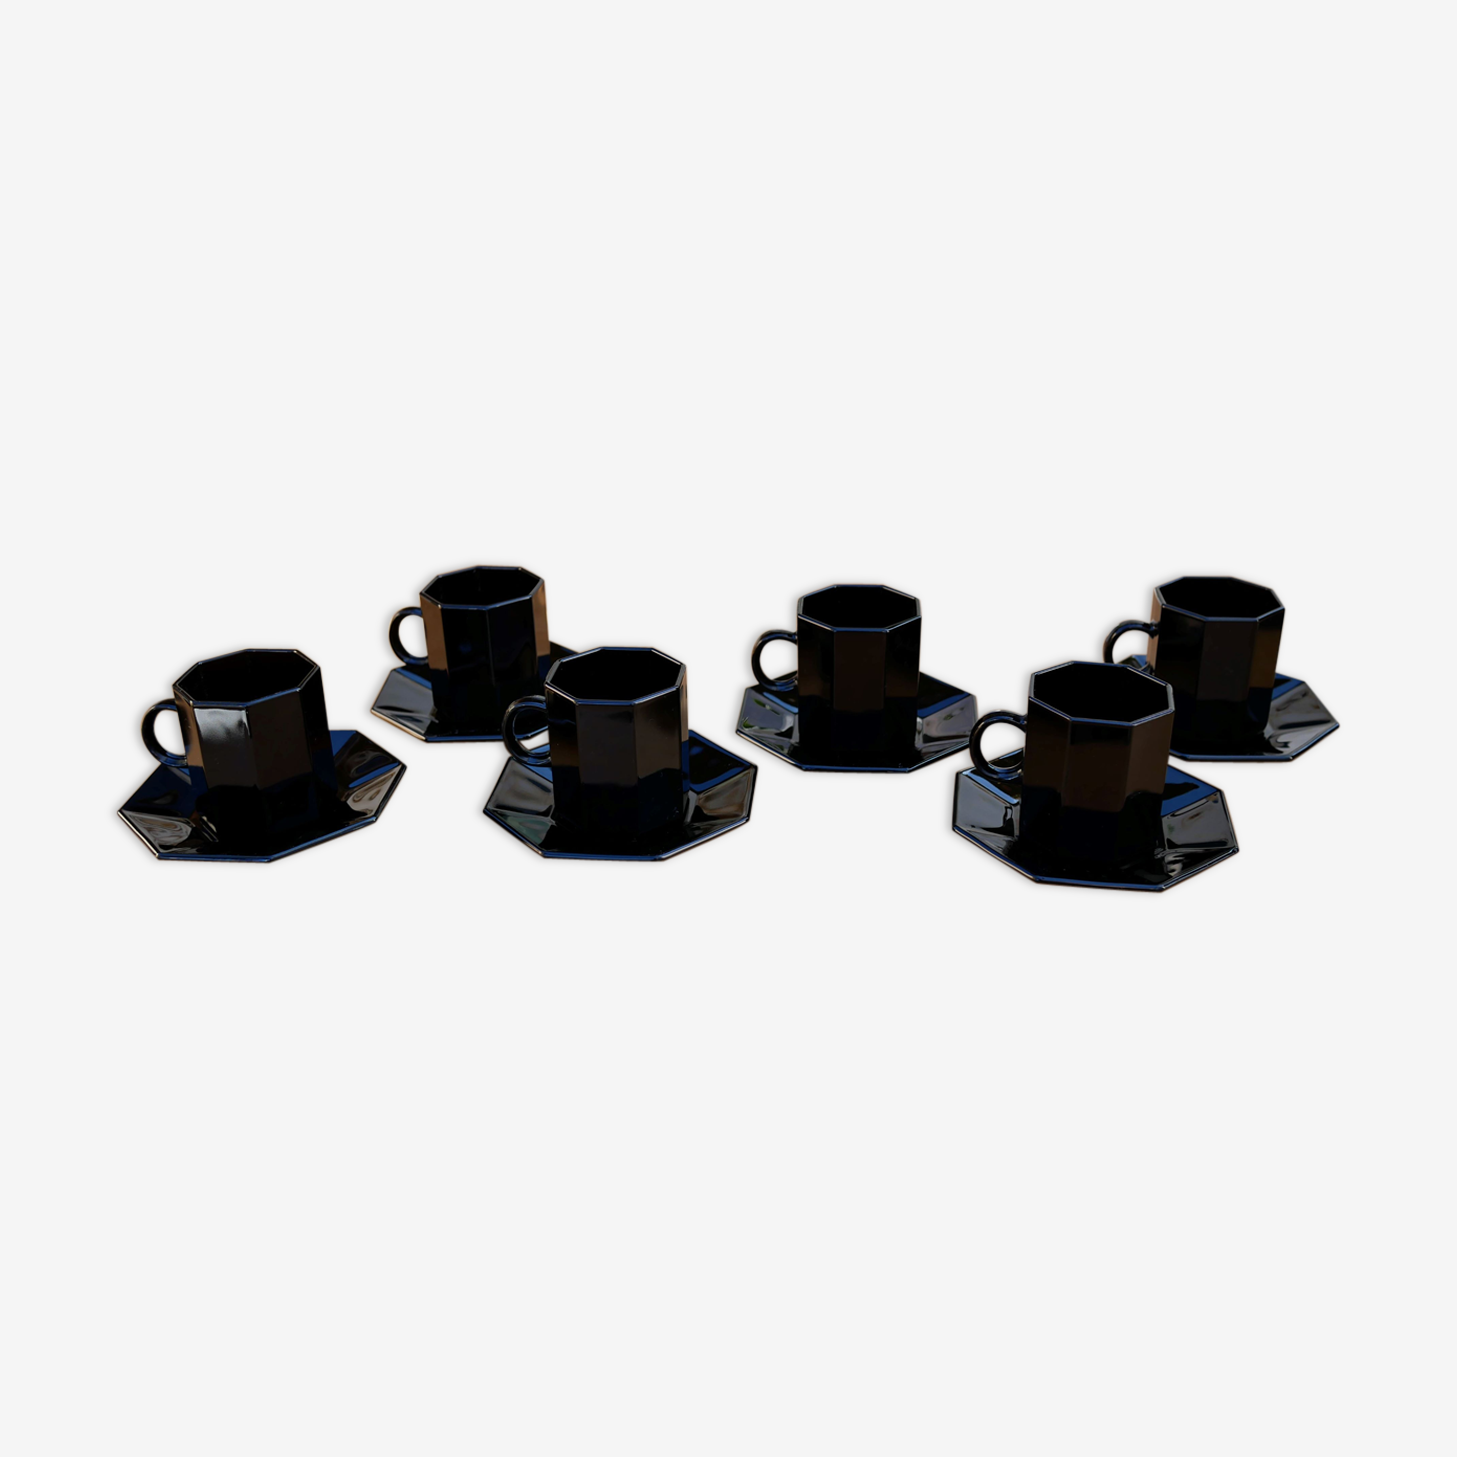 Set of 6 cups and under black vintage cups